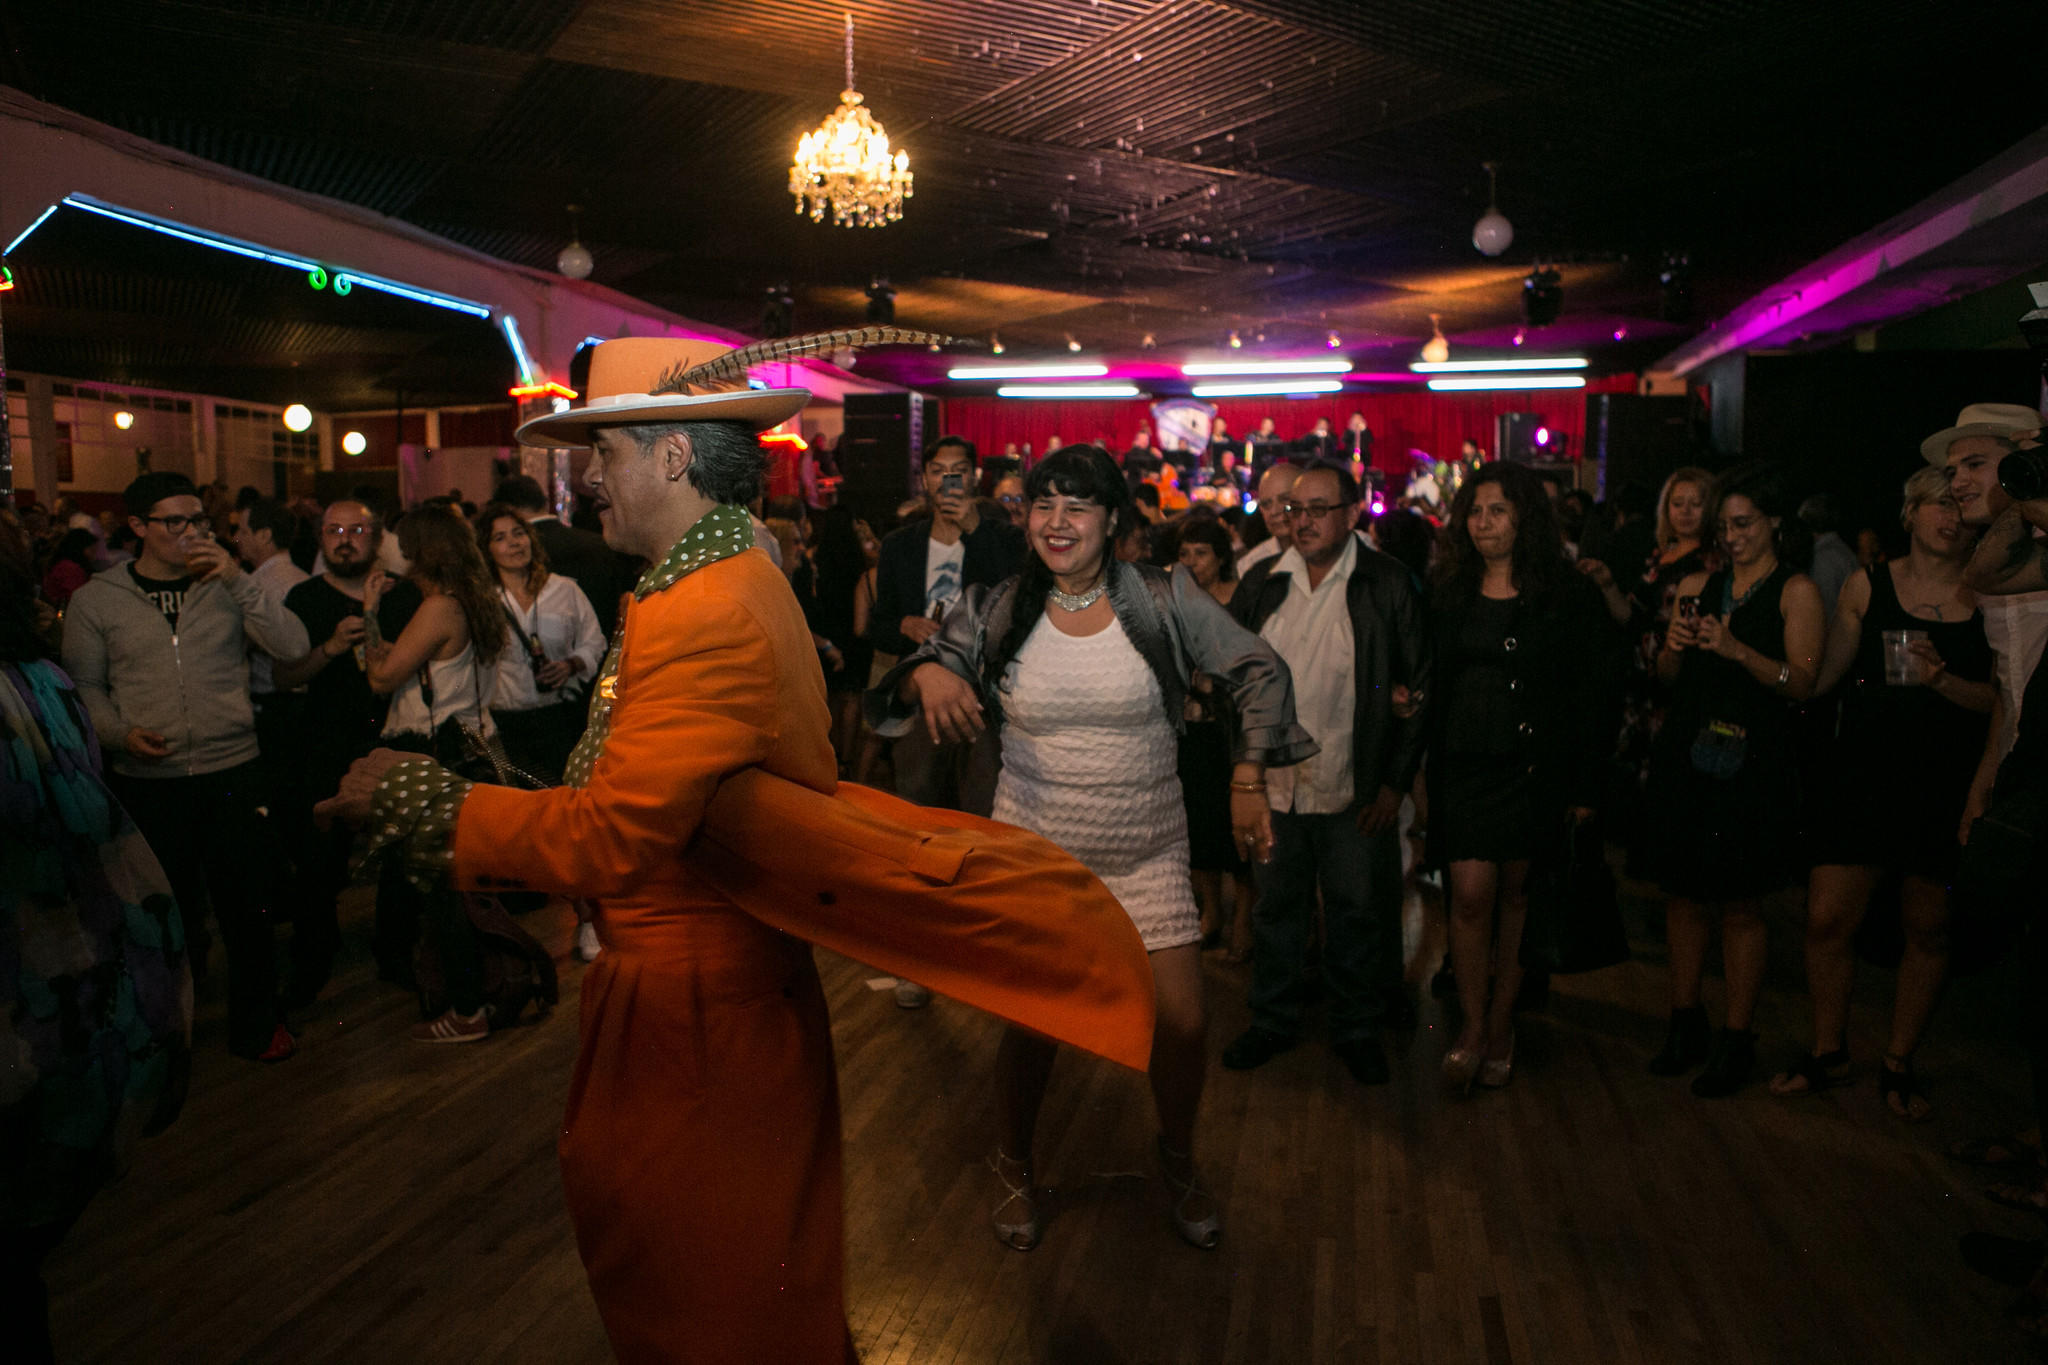 Fidel Castro and Frida Kahlo came here. Why the oldest dance hall in Mexico City isn't quitting yet